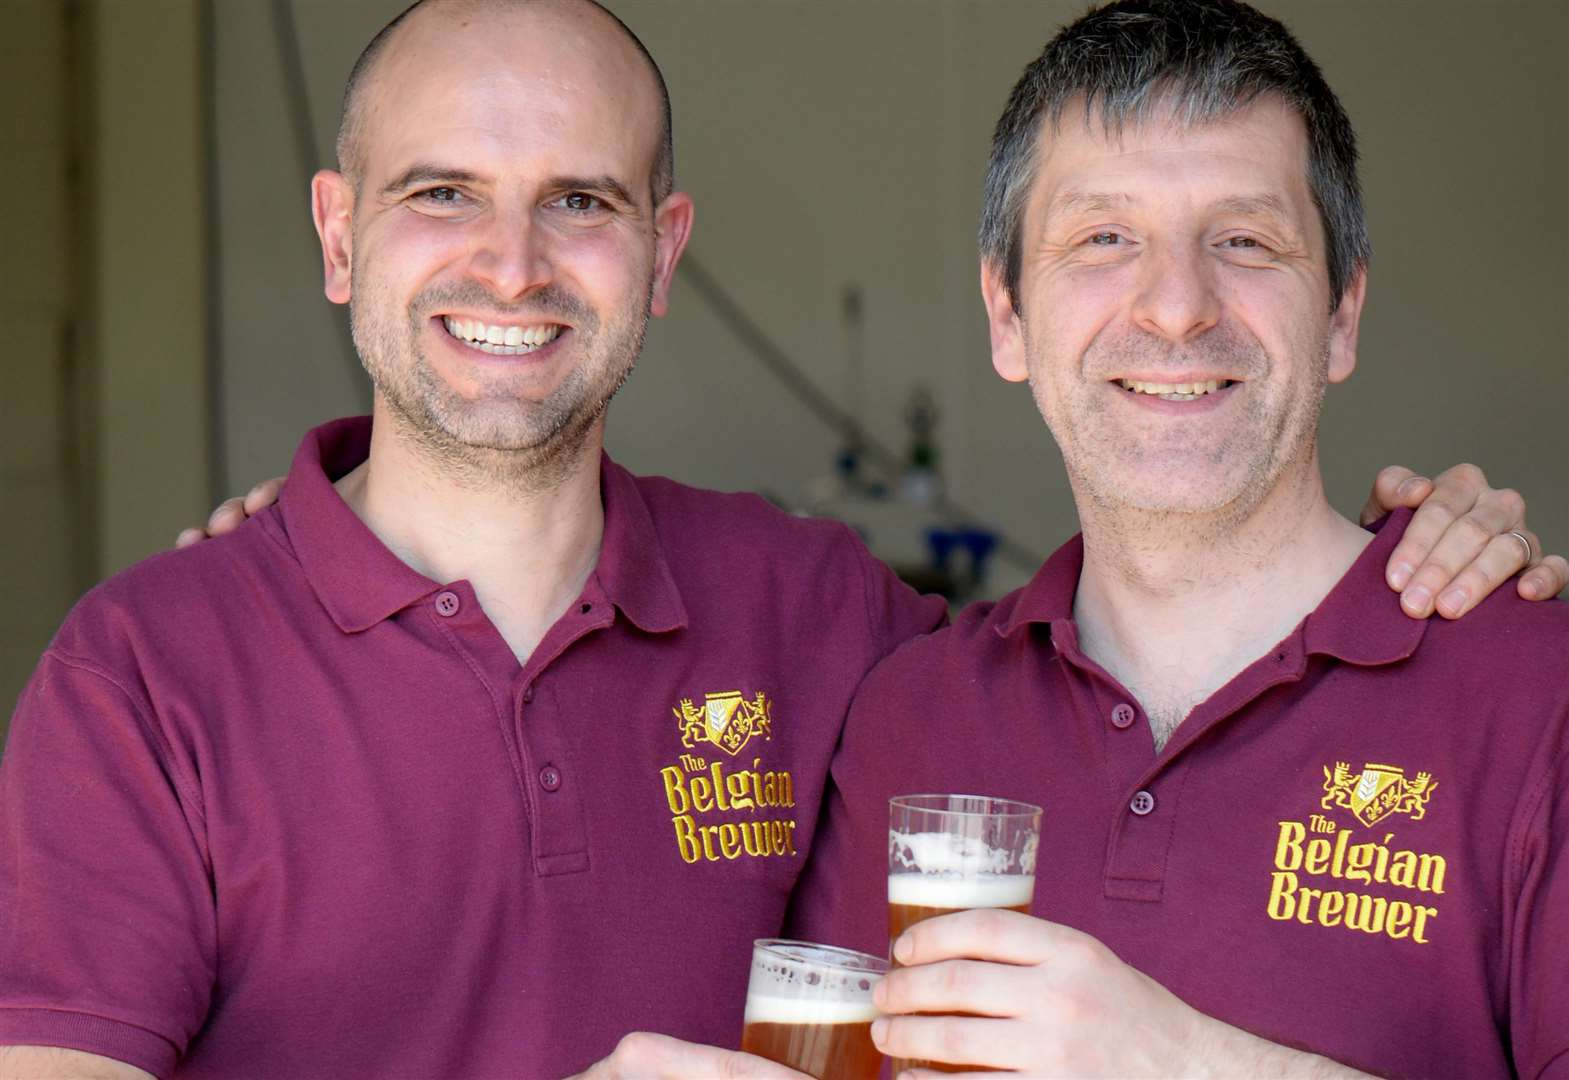 Belgian beer fans with the bottle to set up their own brewery in Stortford